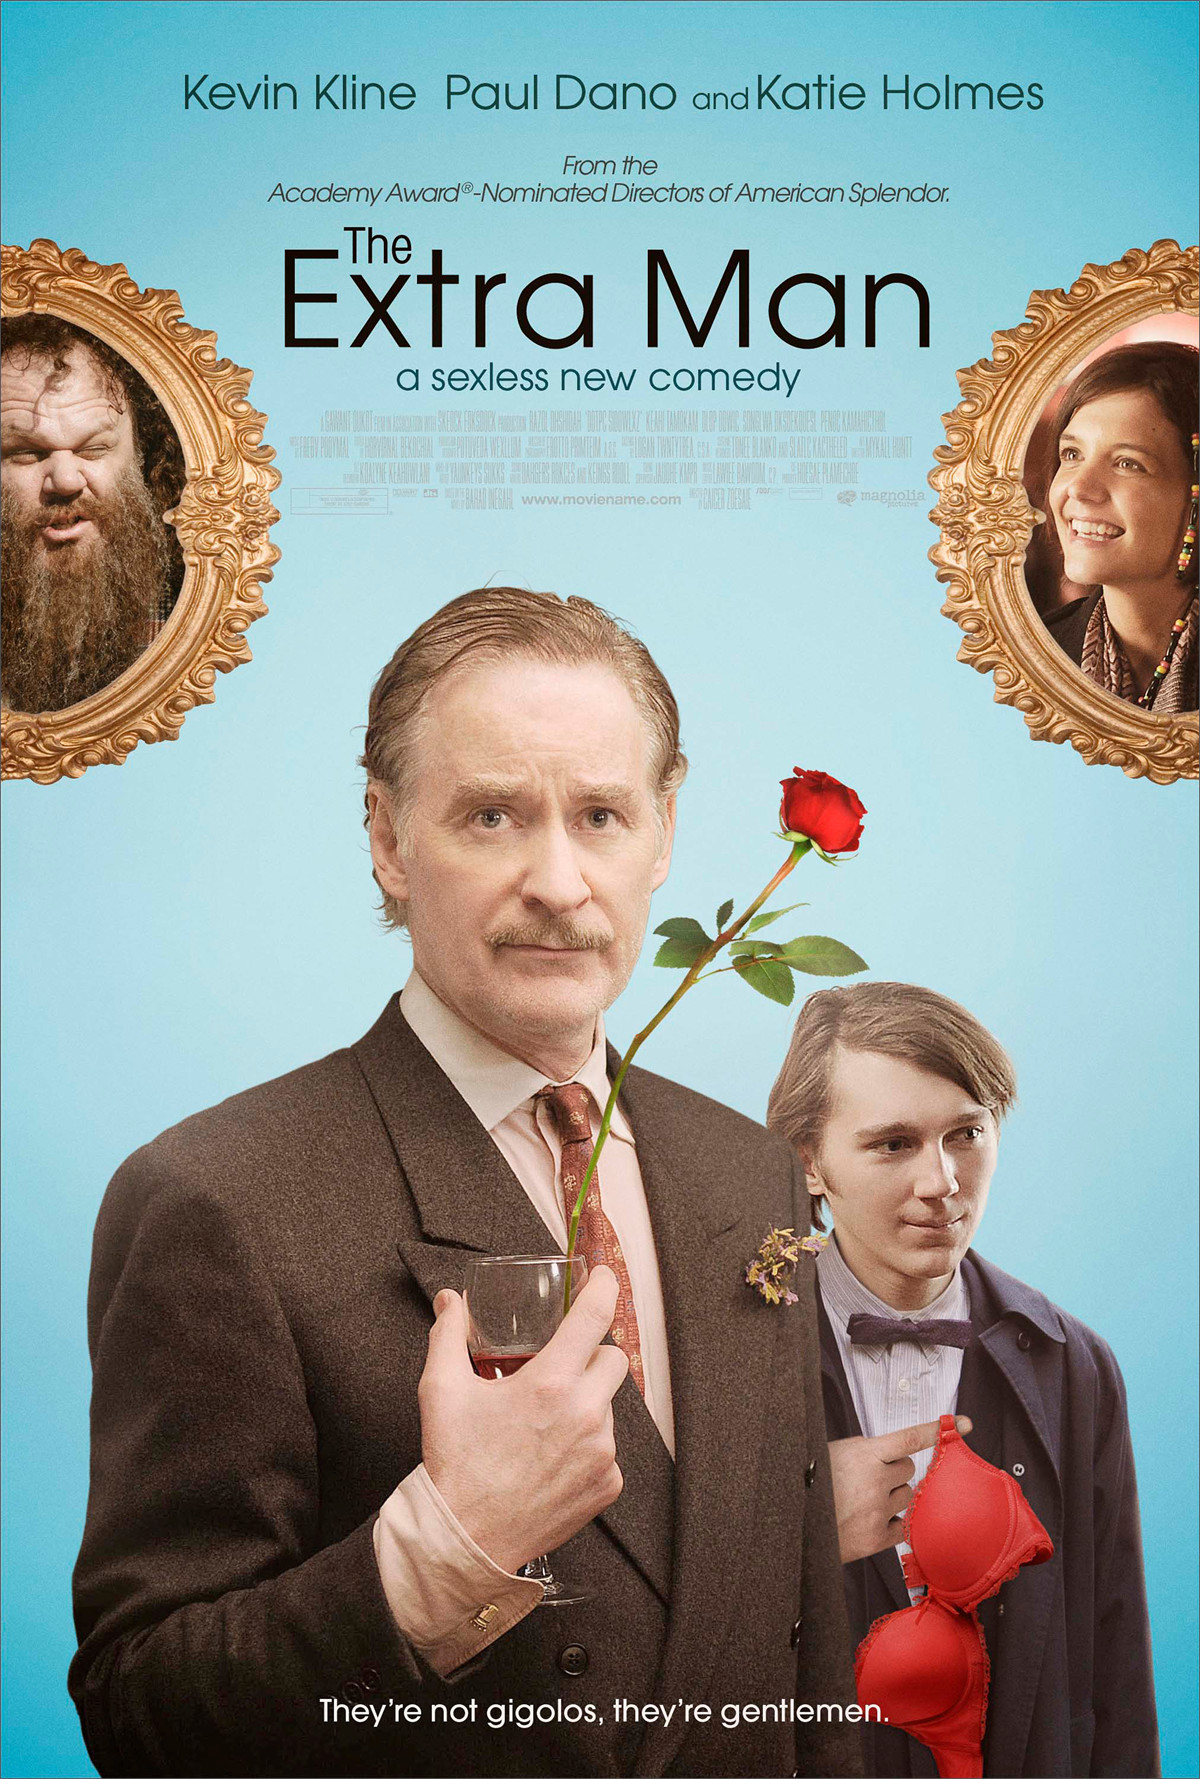 The-extra-man-9781439196496.in01